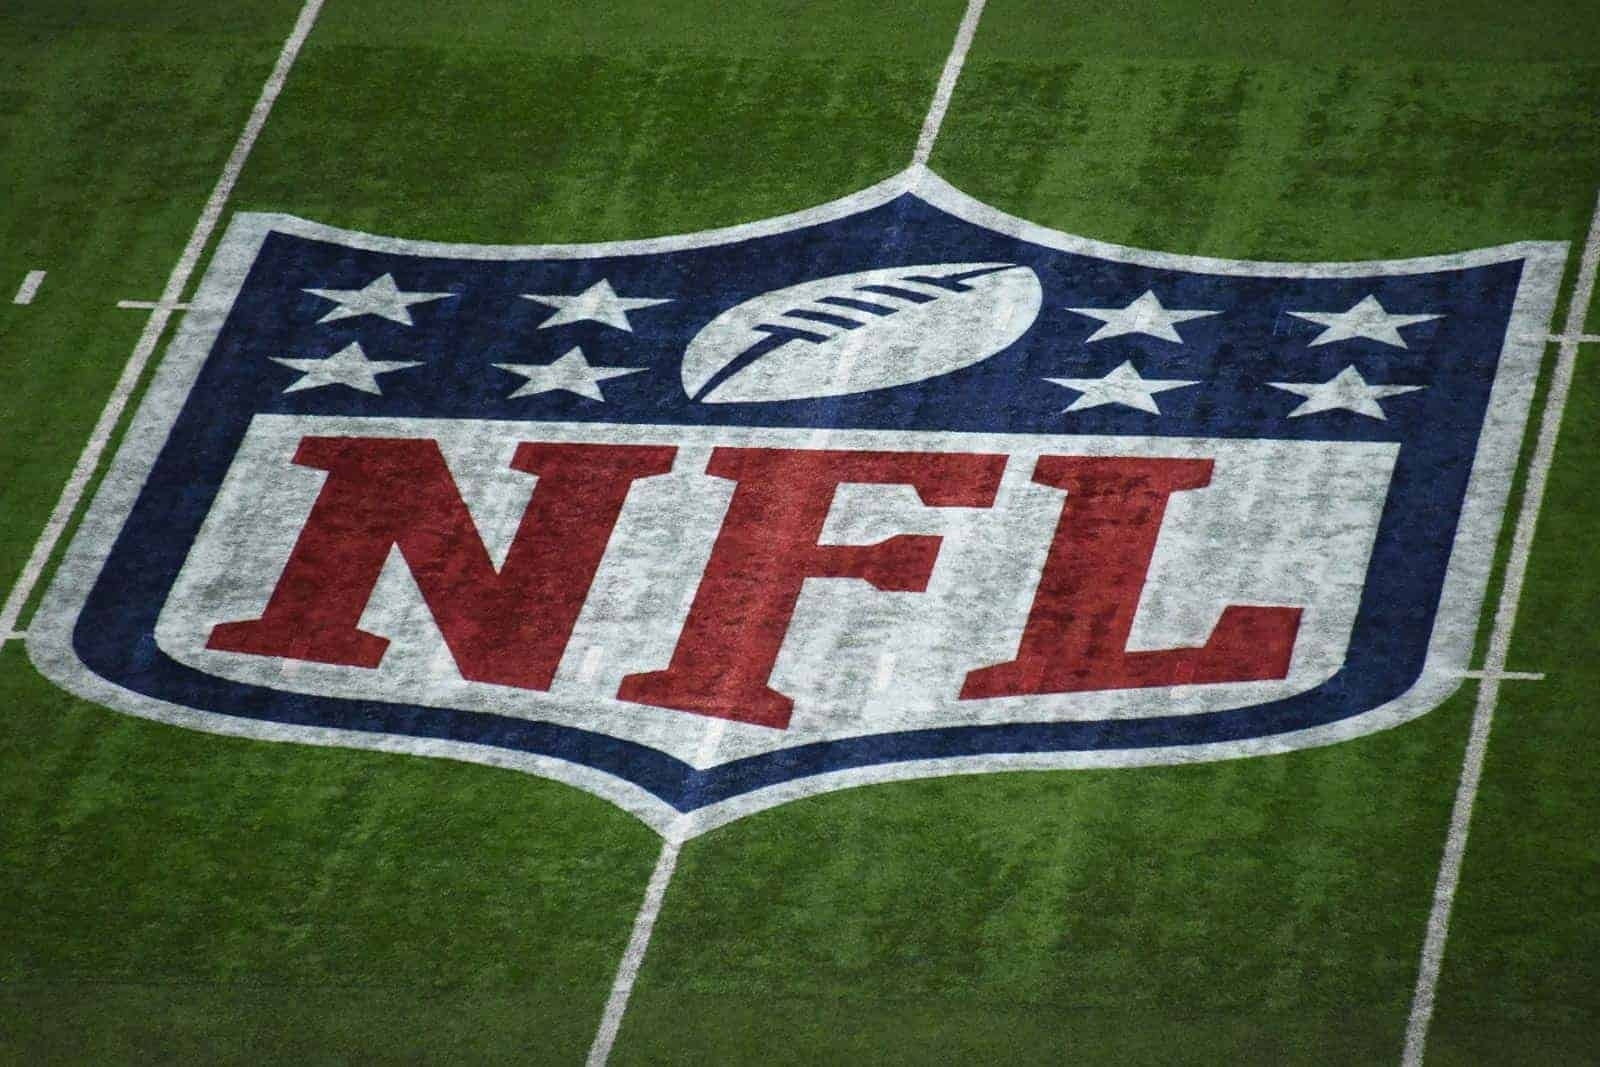 Nfl Playoff Schedule Expanding To 14 Teams Beginning With